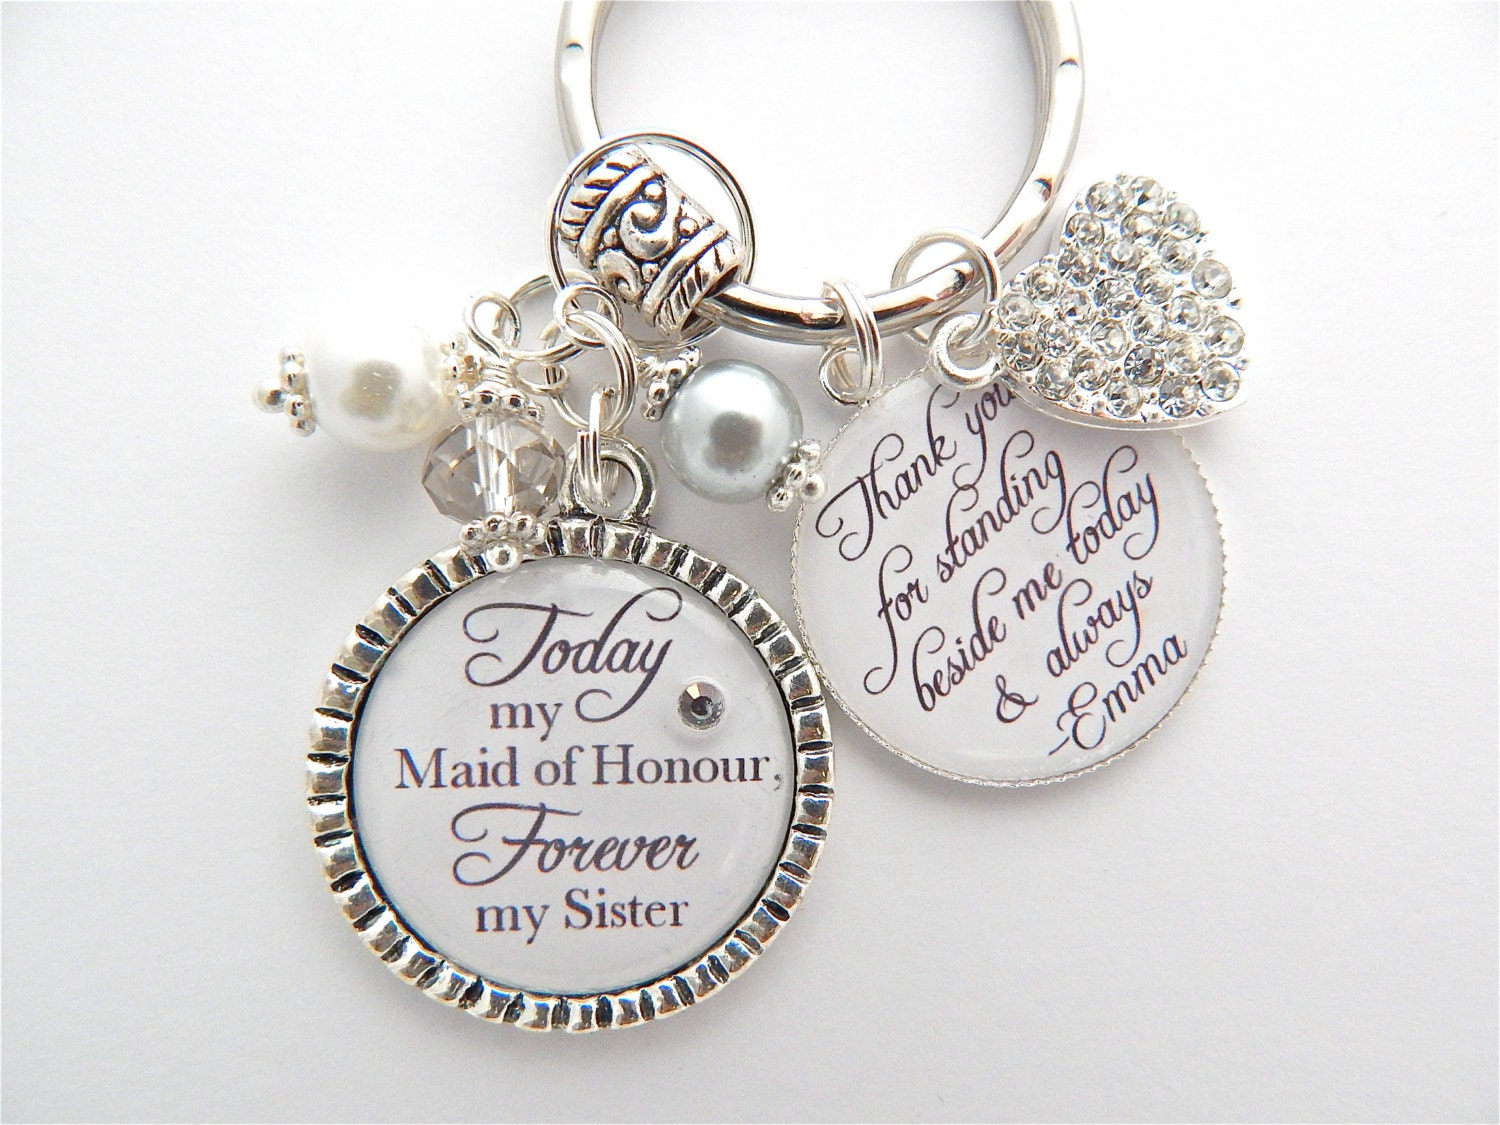 Gifts For Bride On Wedding Day From Bridesmaid: MAID Of HONOR Gift Bridesmaid Gift Rehearsal Dinner Gift